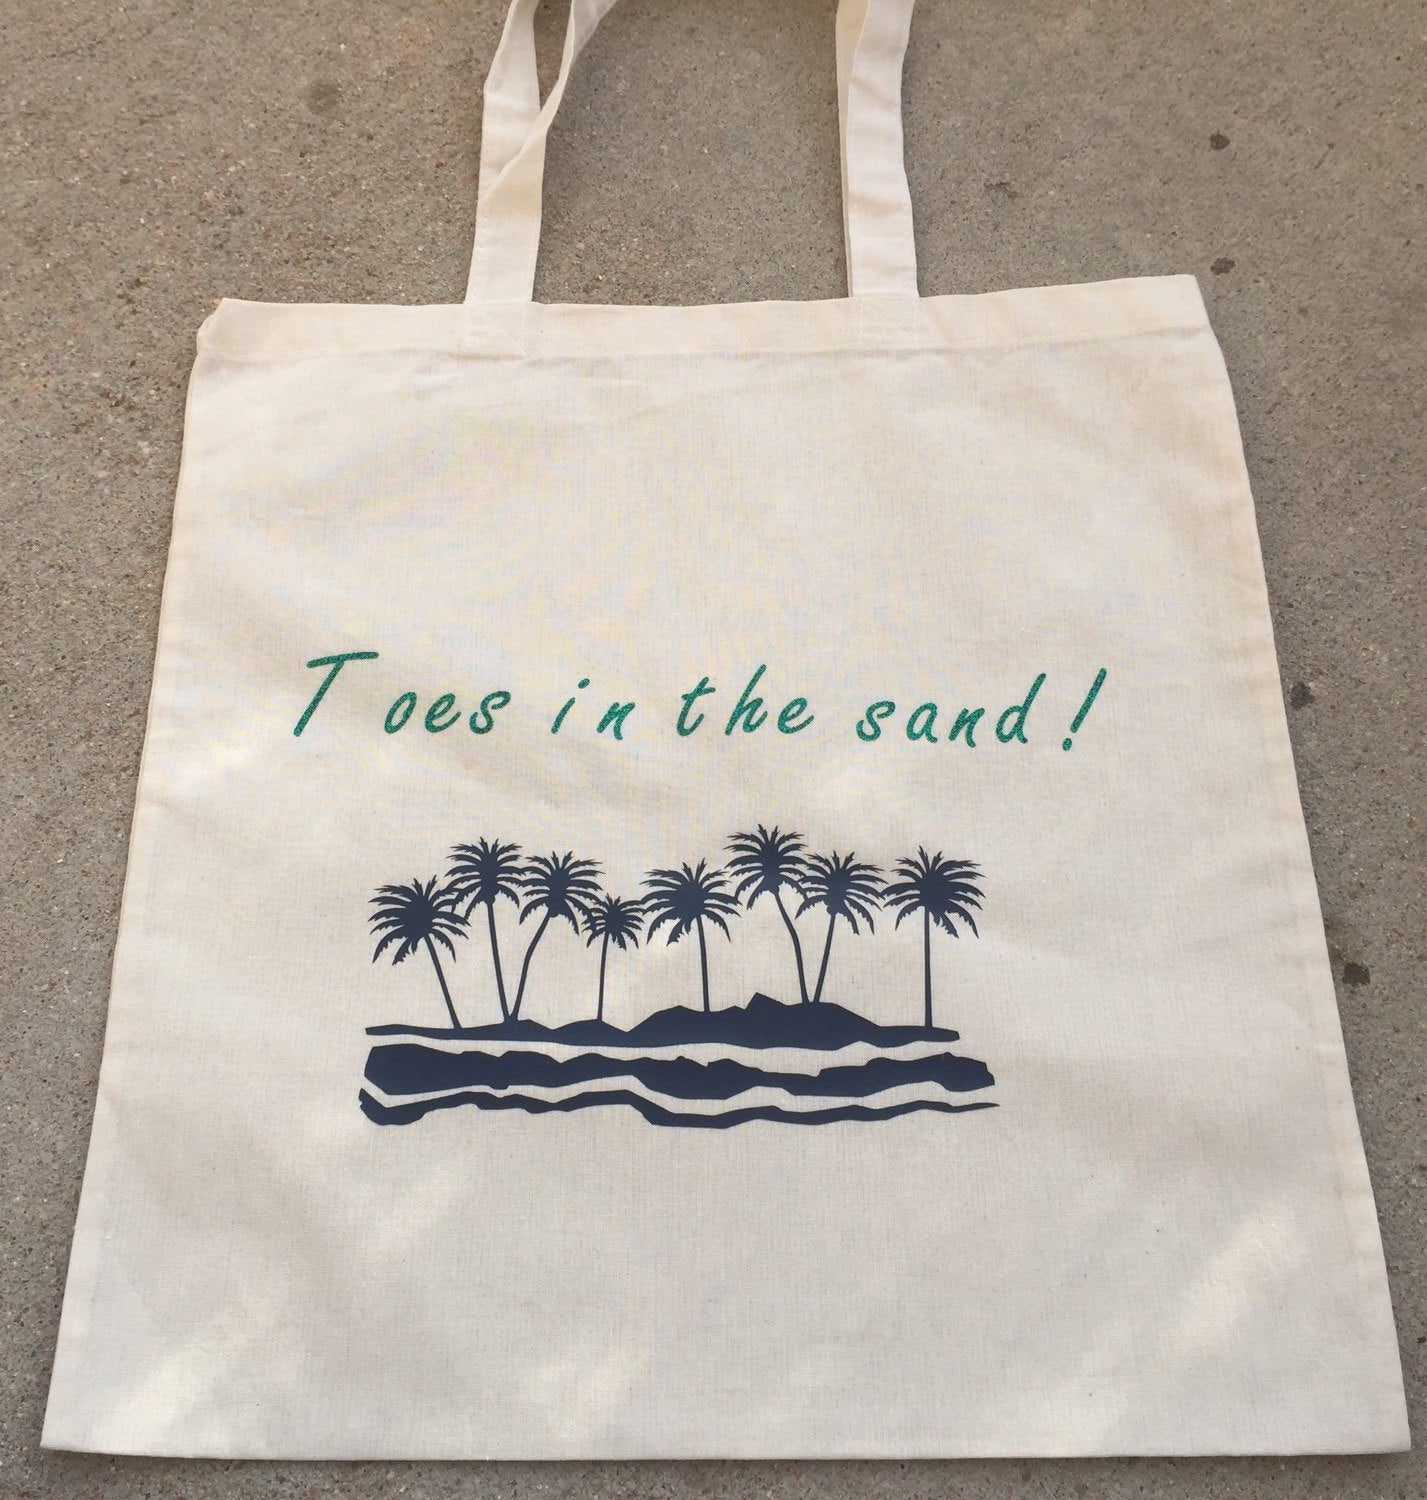 Toes in the sand Wedding welcome bag, beach quotes destination wedding welcome tote, custom wedding beach tote, welcome tote bag, beach wedd